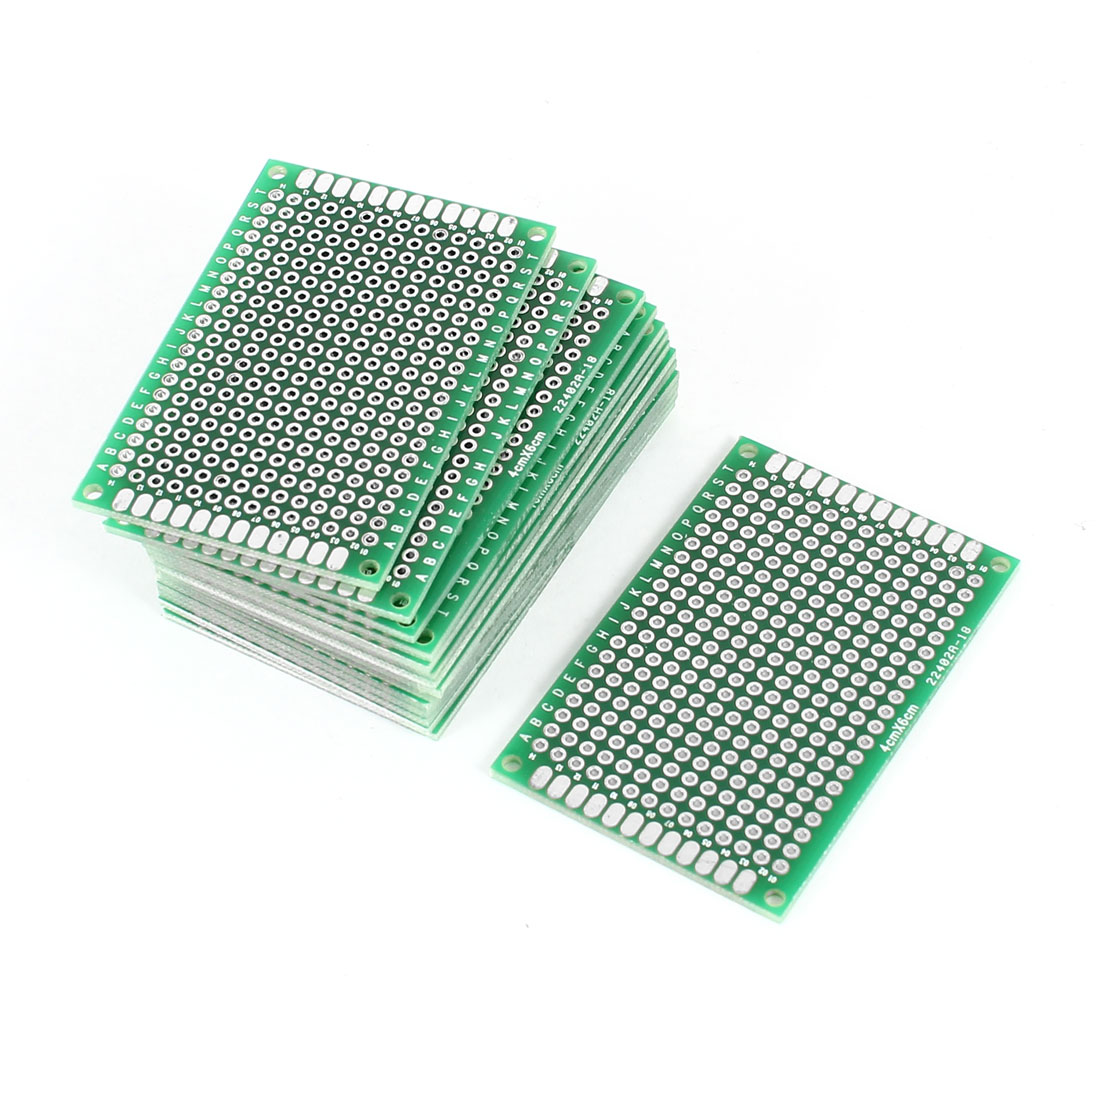 15pcs 4cm x 6cm Double Sides Prototyping Experiment Matrix Universal PCB Print Board for Circuit DIY